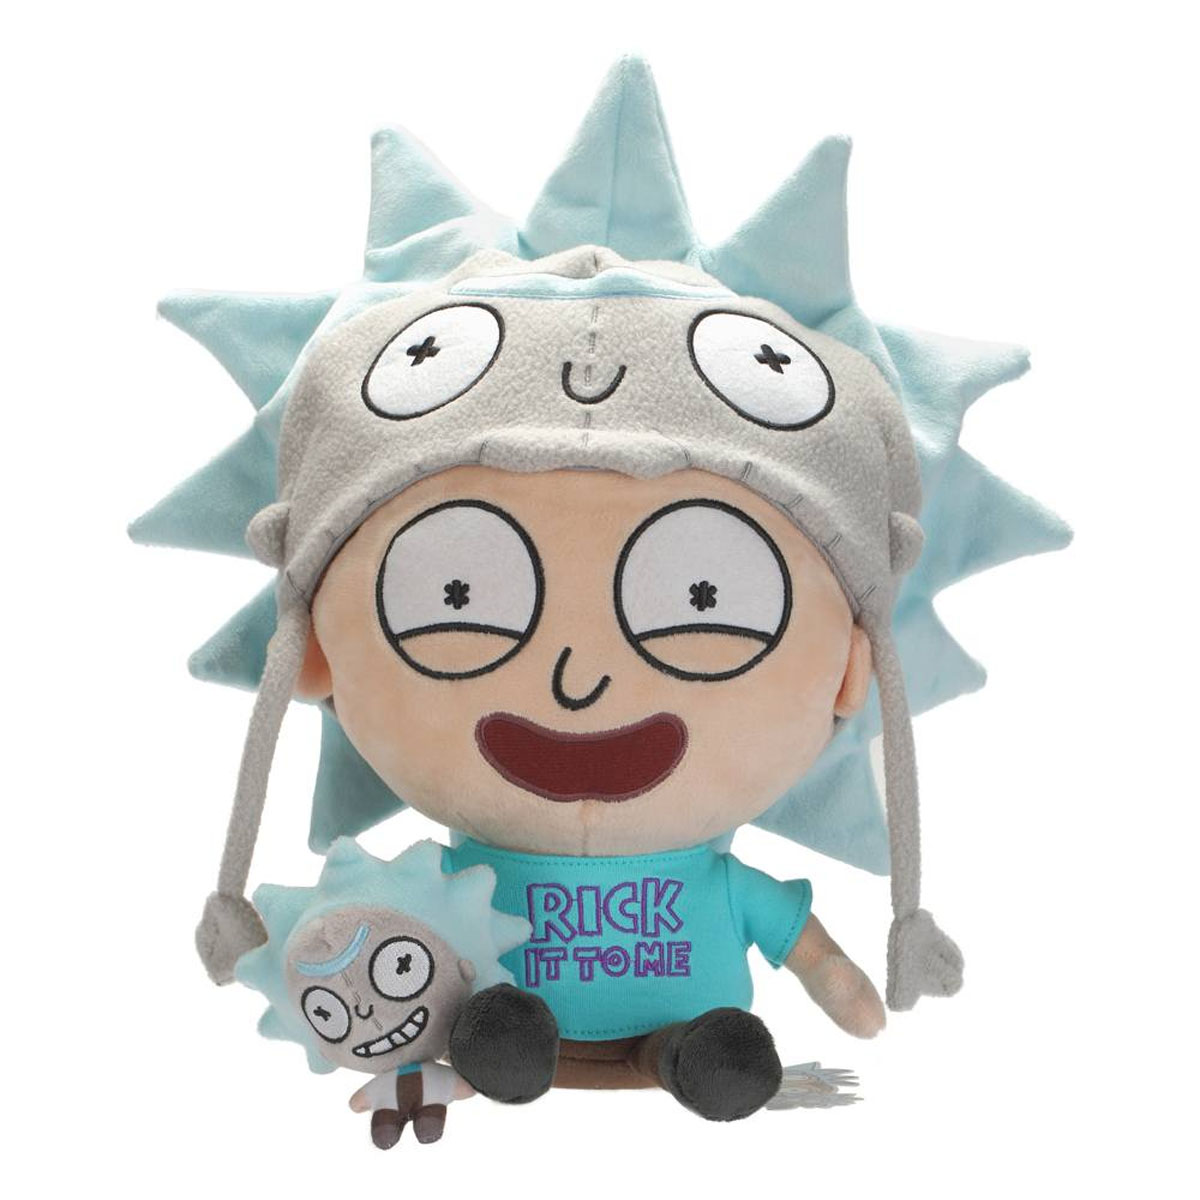 RICK AND MORTY Fans Get POCKET MORTYS Plush Exclusives For Comic-Con_2